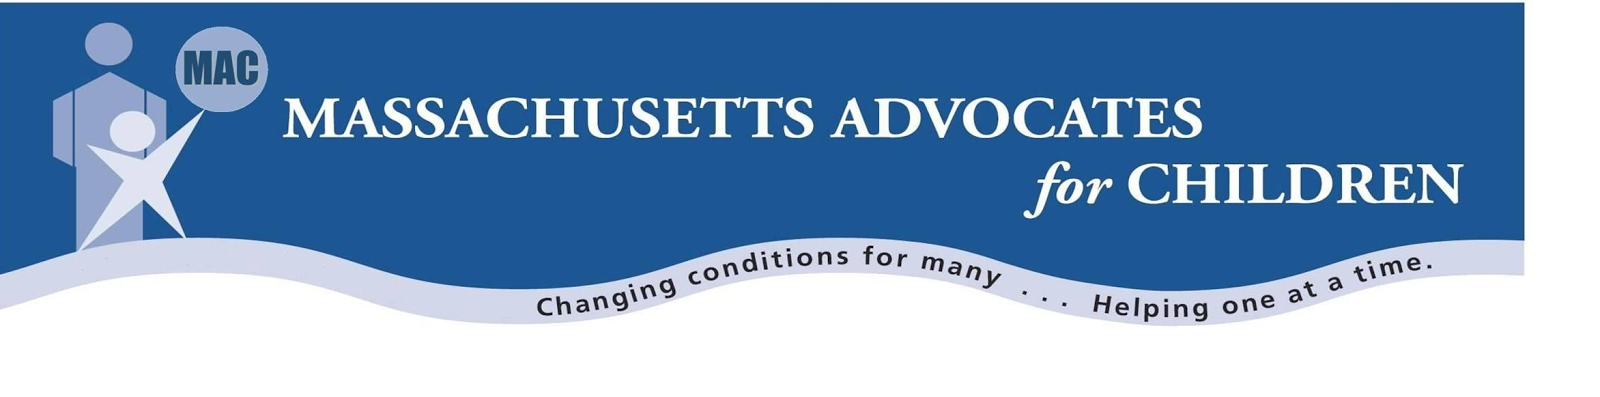 Woburn Sepacs 9th Annual College Fair >> Nesca News Notes Mass Advocates For Children Young Adult Leaders